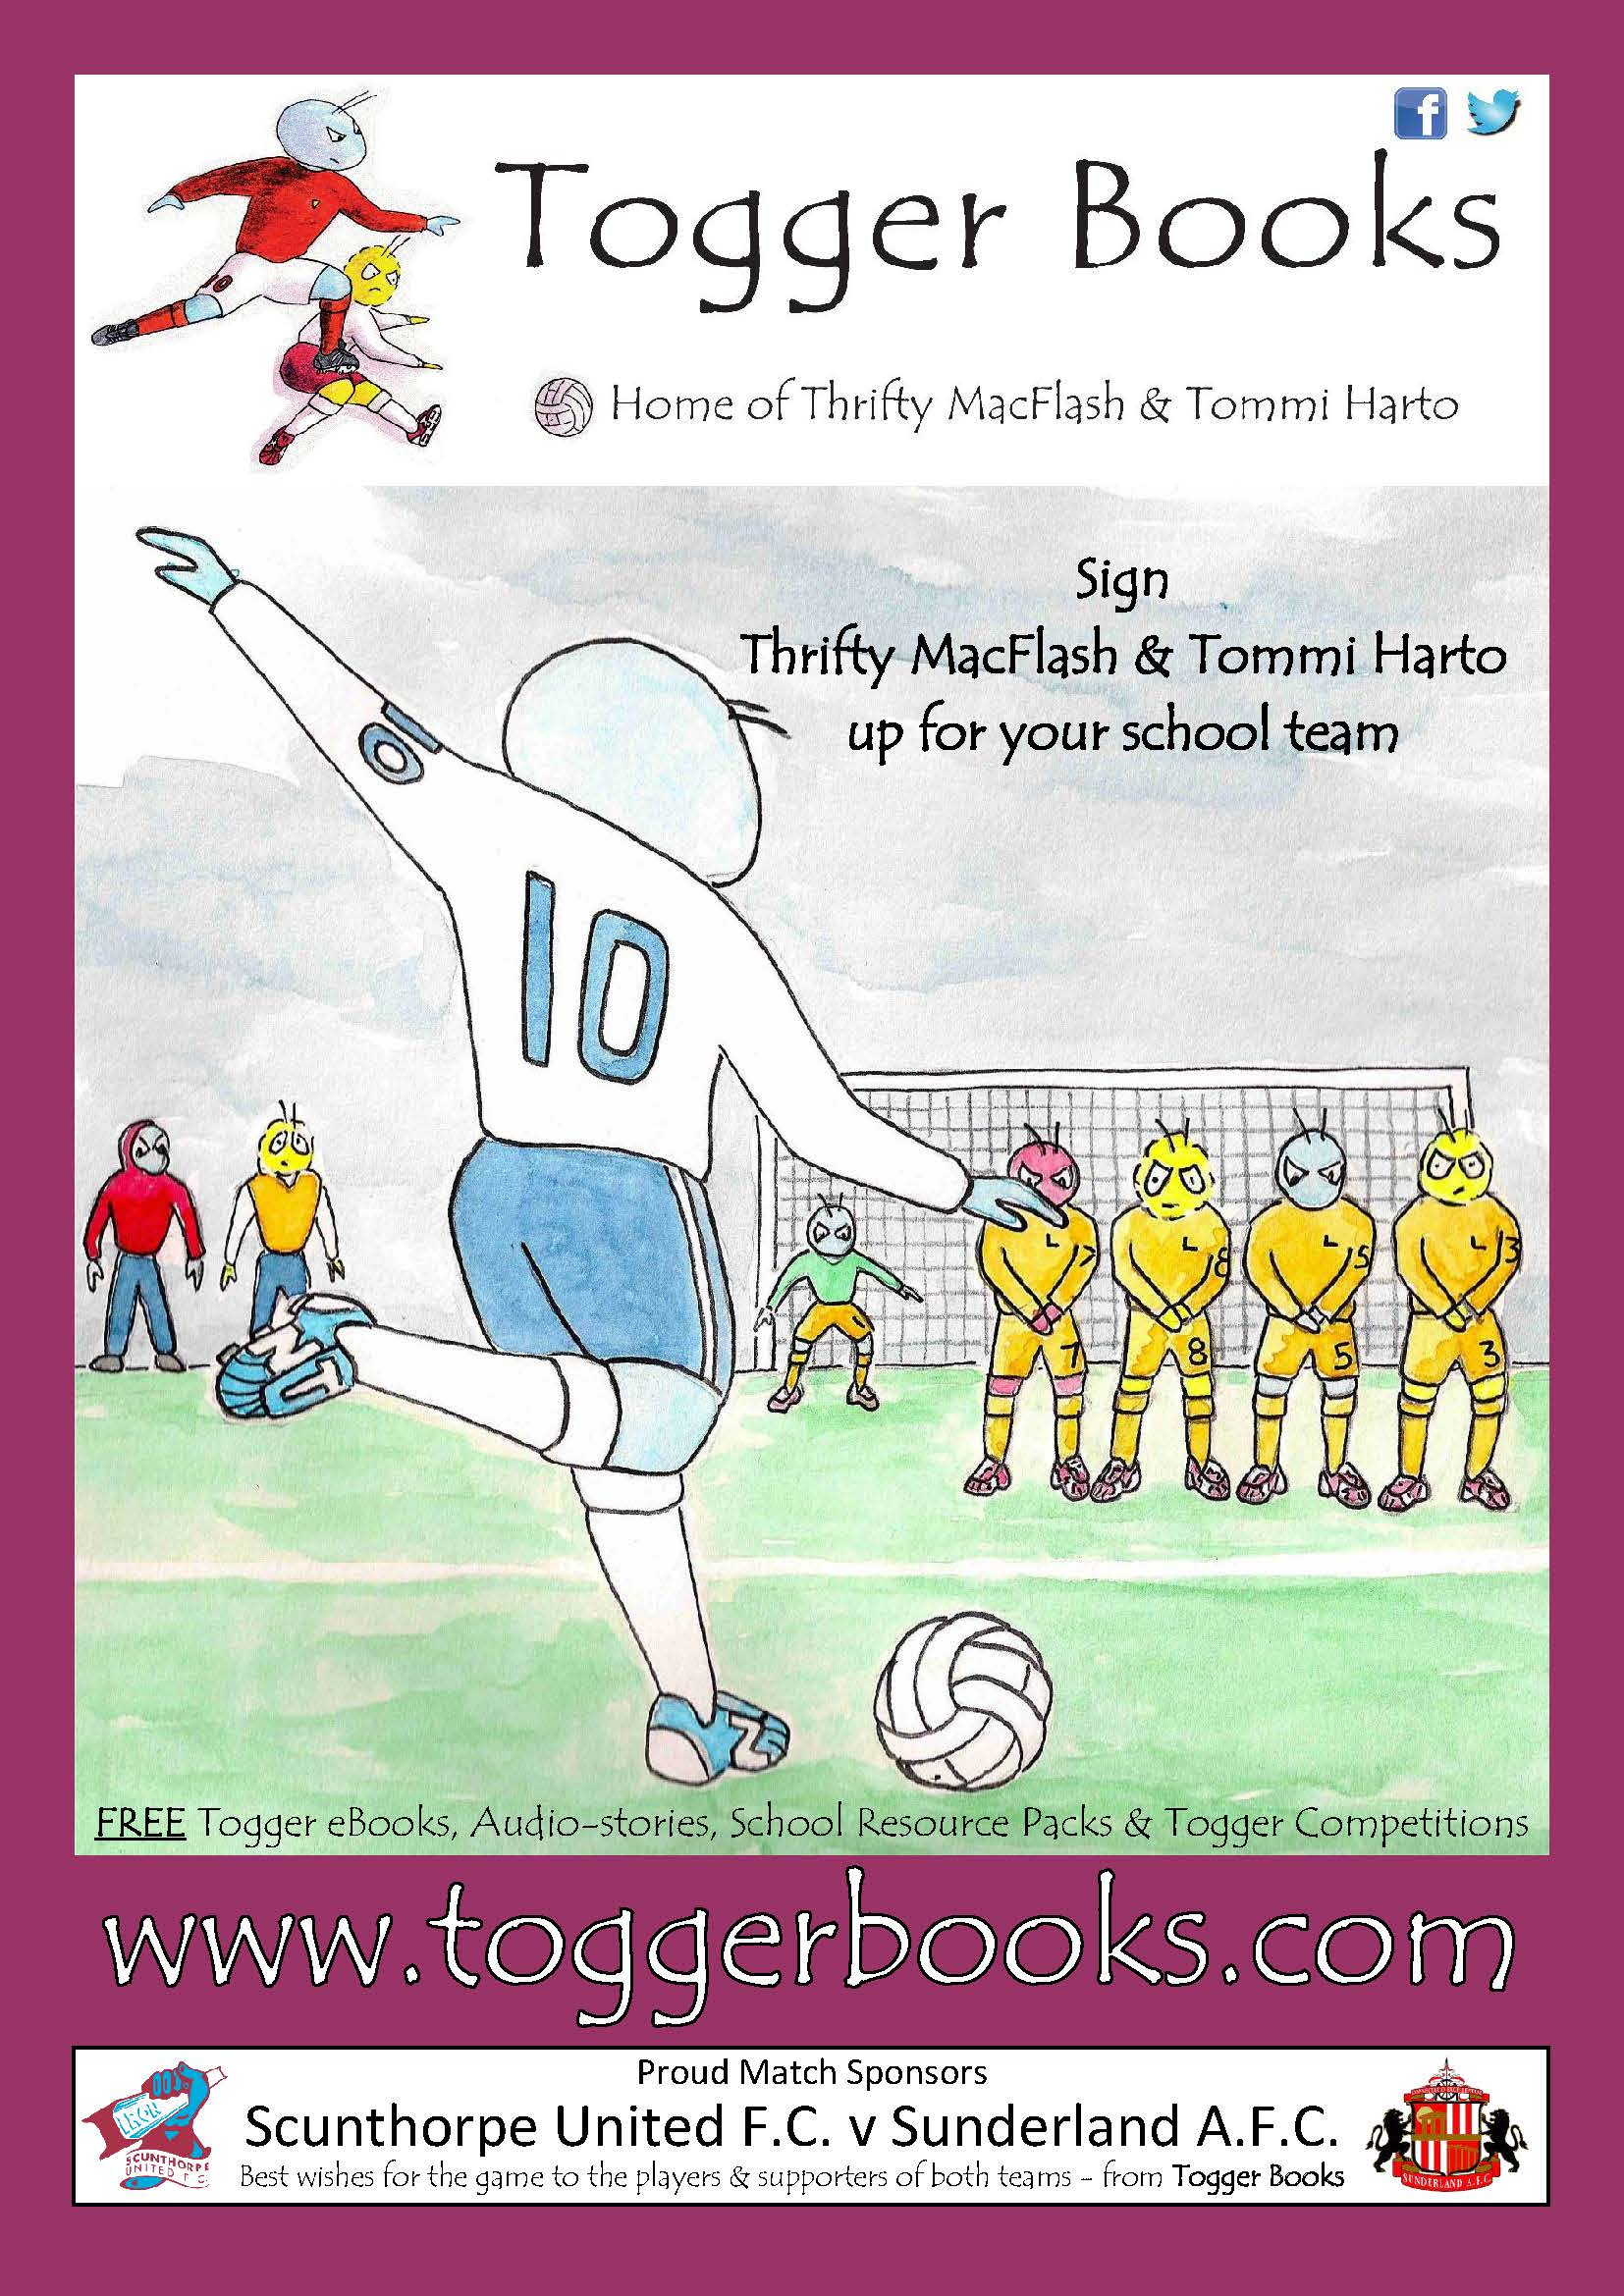 2 Togger Book Sponors Full Page Ad Scunthorpe v Sunderland 2019.jpg